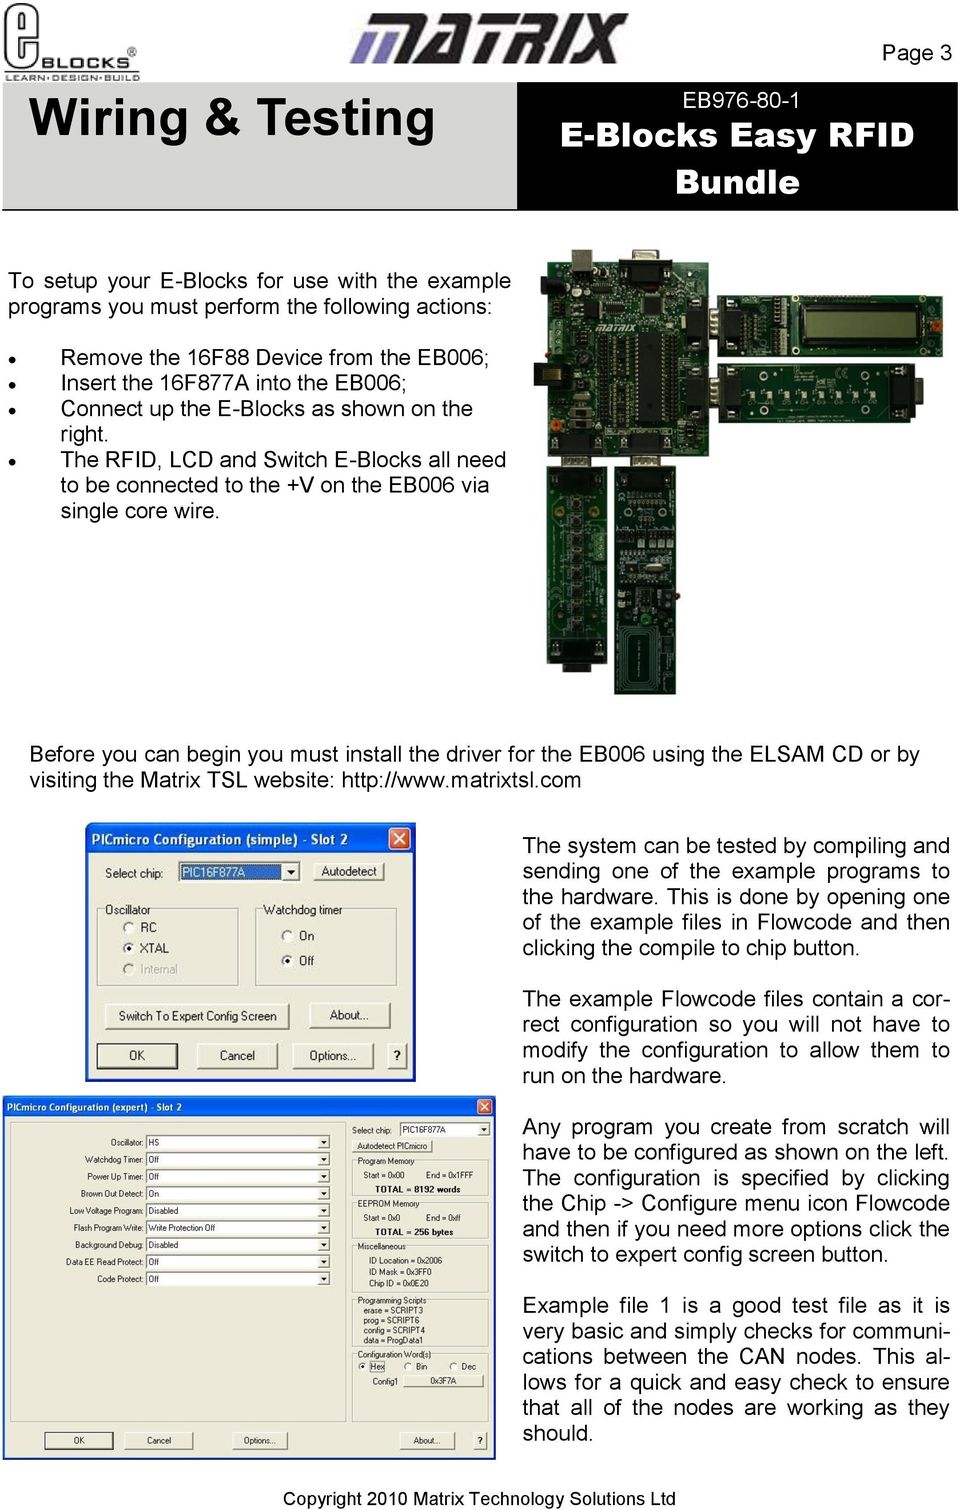 Before you can begin you must install the driver for the EB006 using the ELSAM CD or by visiting the Matrix TSL website: http://www.matrixtsl.